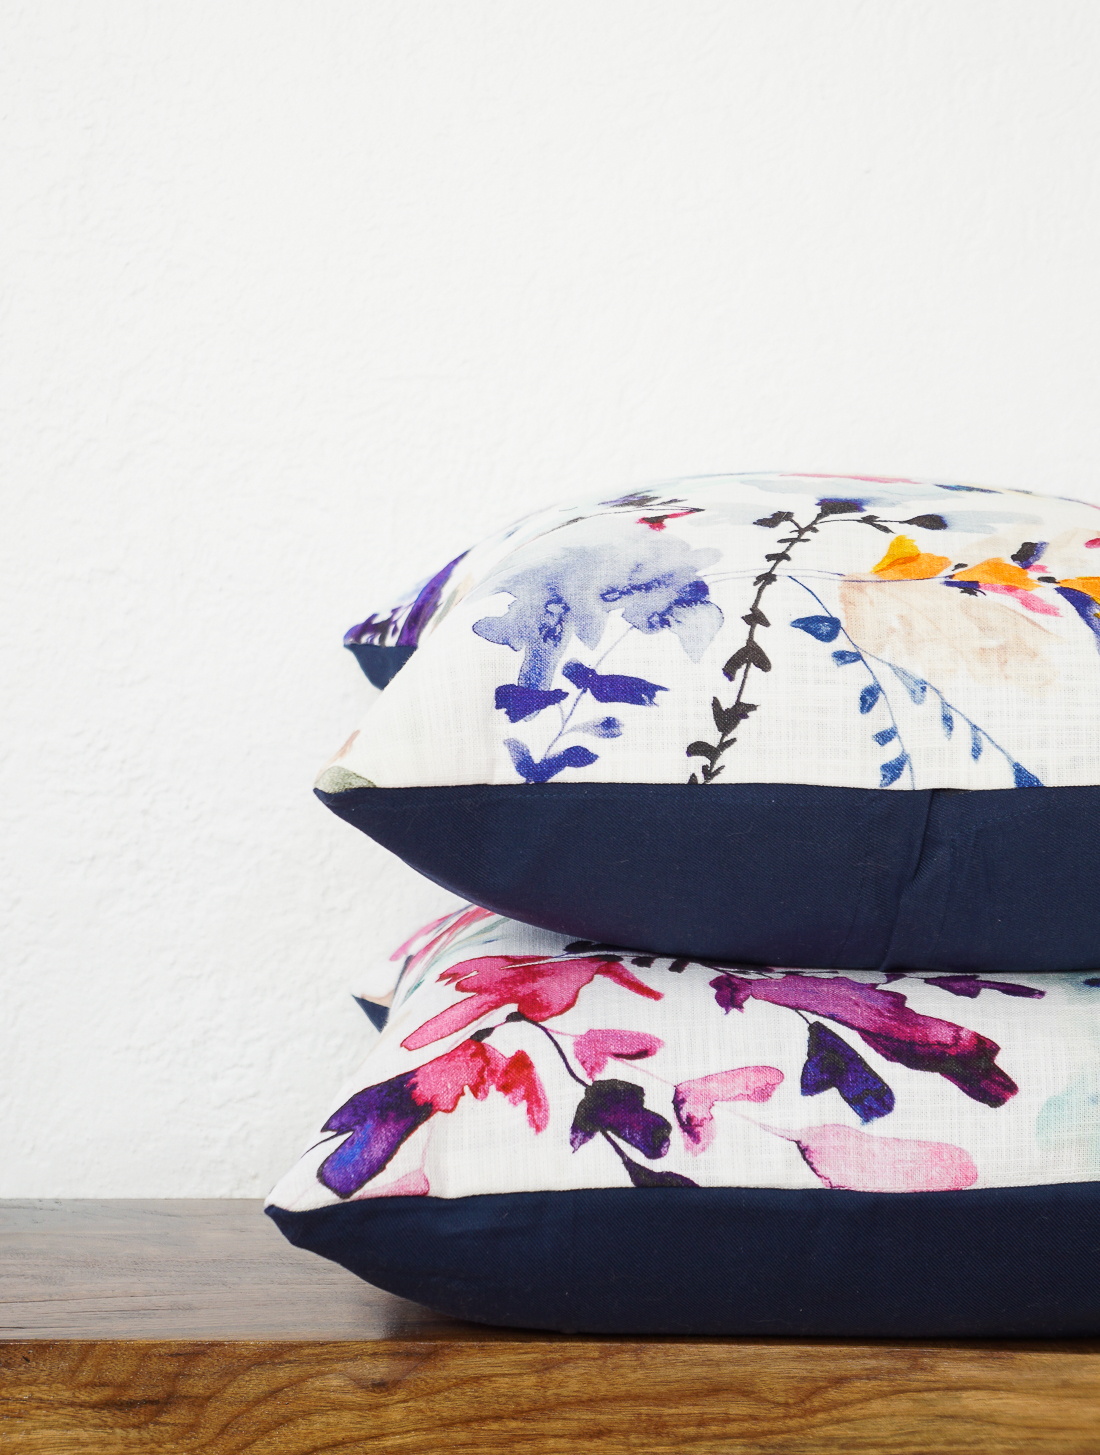 The pillow backings are plain affordable navy napkins from World Market and the tutorial is one of my contributor pieces for Sugar \u0026 Cloth this month ... & The Easiest DIY Pillows EVER: No-Sew Envelope Pillows Made from ... pillowsntoast.com